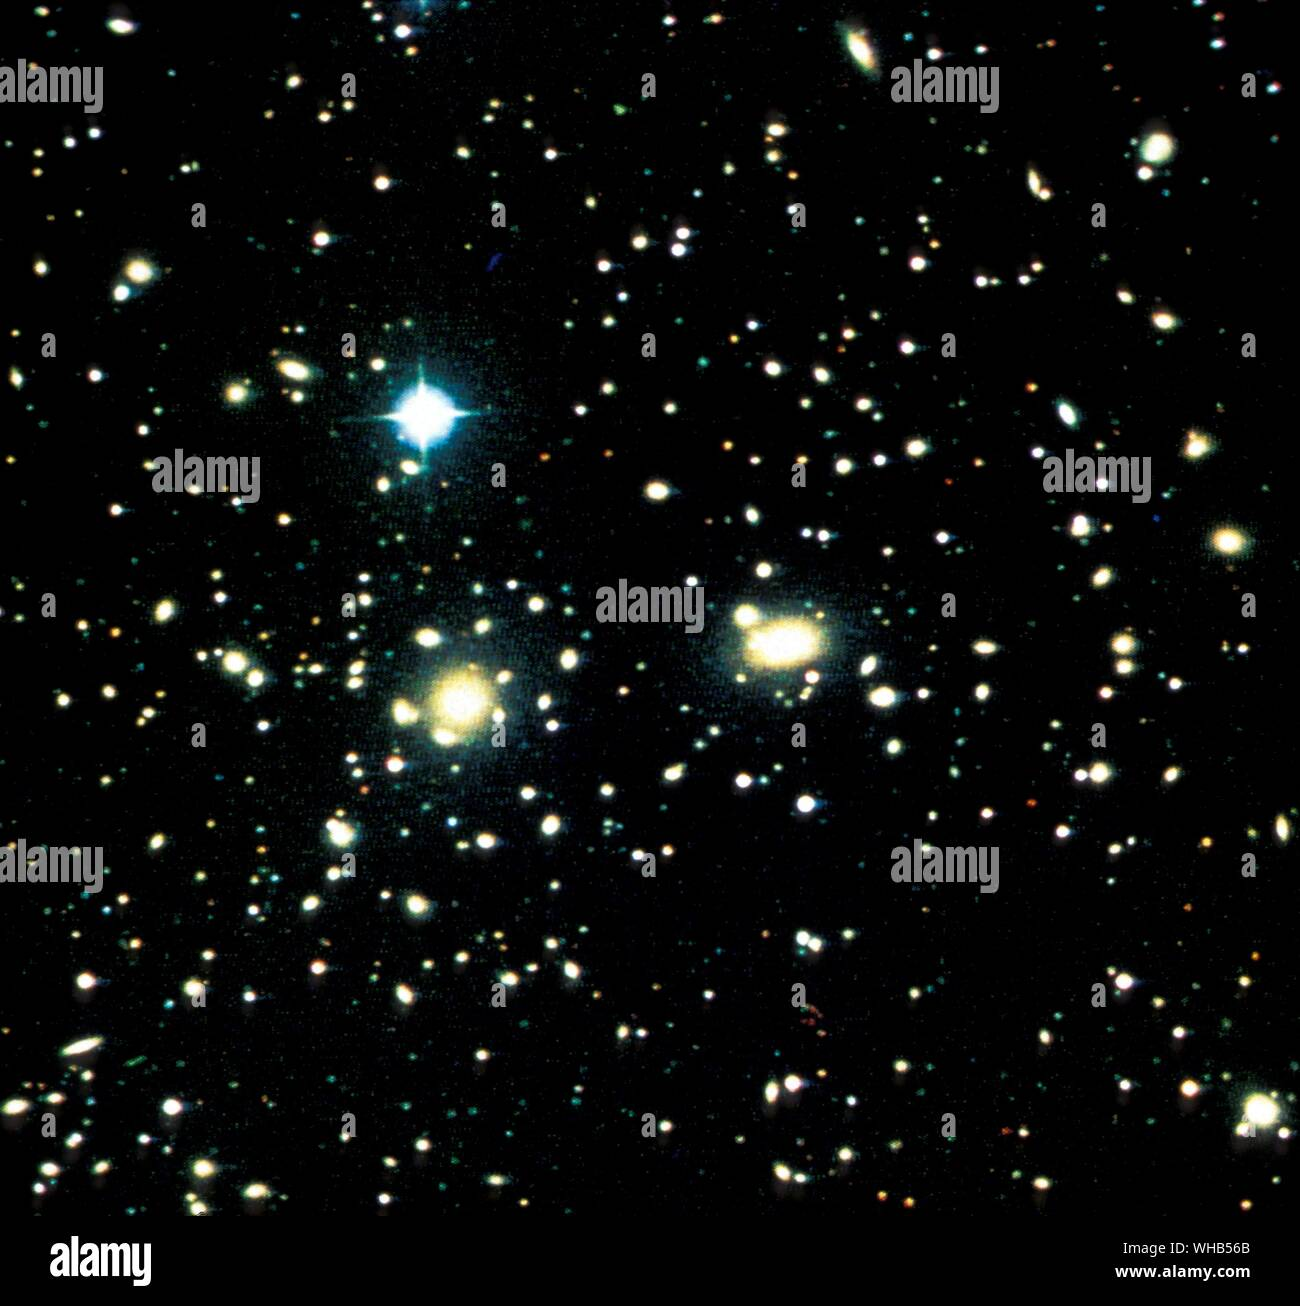 Coma cluster of galaxies The Coma Cluster (Abell 1656) is a large cluster of galaxies that contains over 1,000 identified galaxies. Along with the Leo Cluster (Abell 1367) it is one of the two major clusters comprising the Coma Supercluster.. The cluster's mean distance from Earth is 99 Mpc (321 million light years). Its ten brightest spiral galaxies have apparent magnitudes of 12-14 that are observable with amateur telescopes larger than 20 cm. The central region is dominated by two giant elliptical galaxies: NGC 4874 and NGC 4889. The cluster is within a few degrees of the north galactic Stock Photo